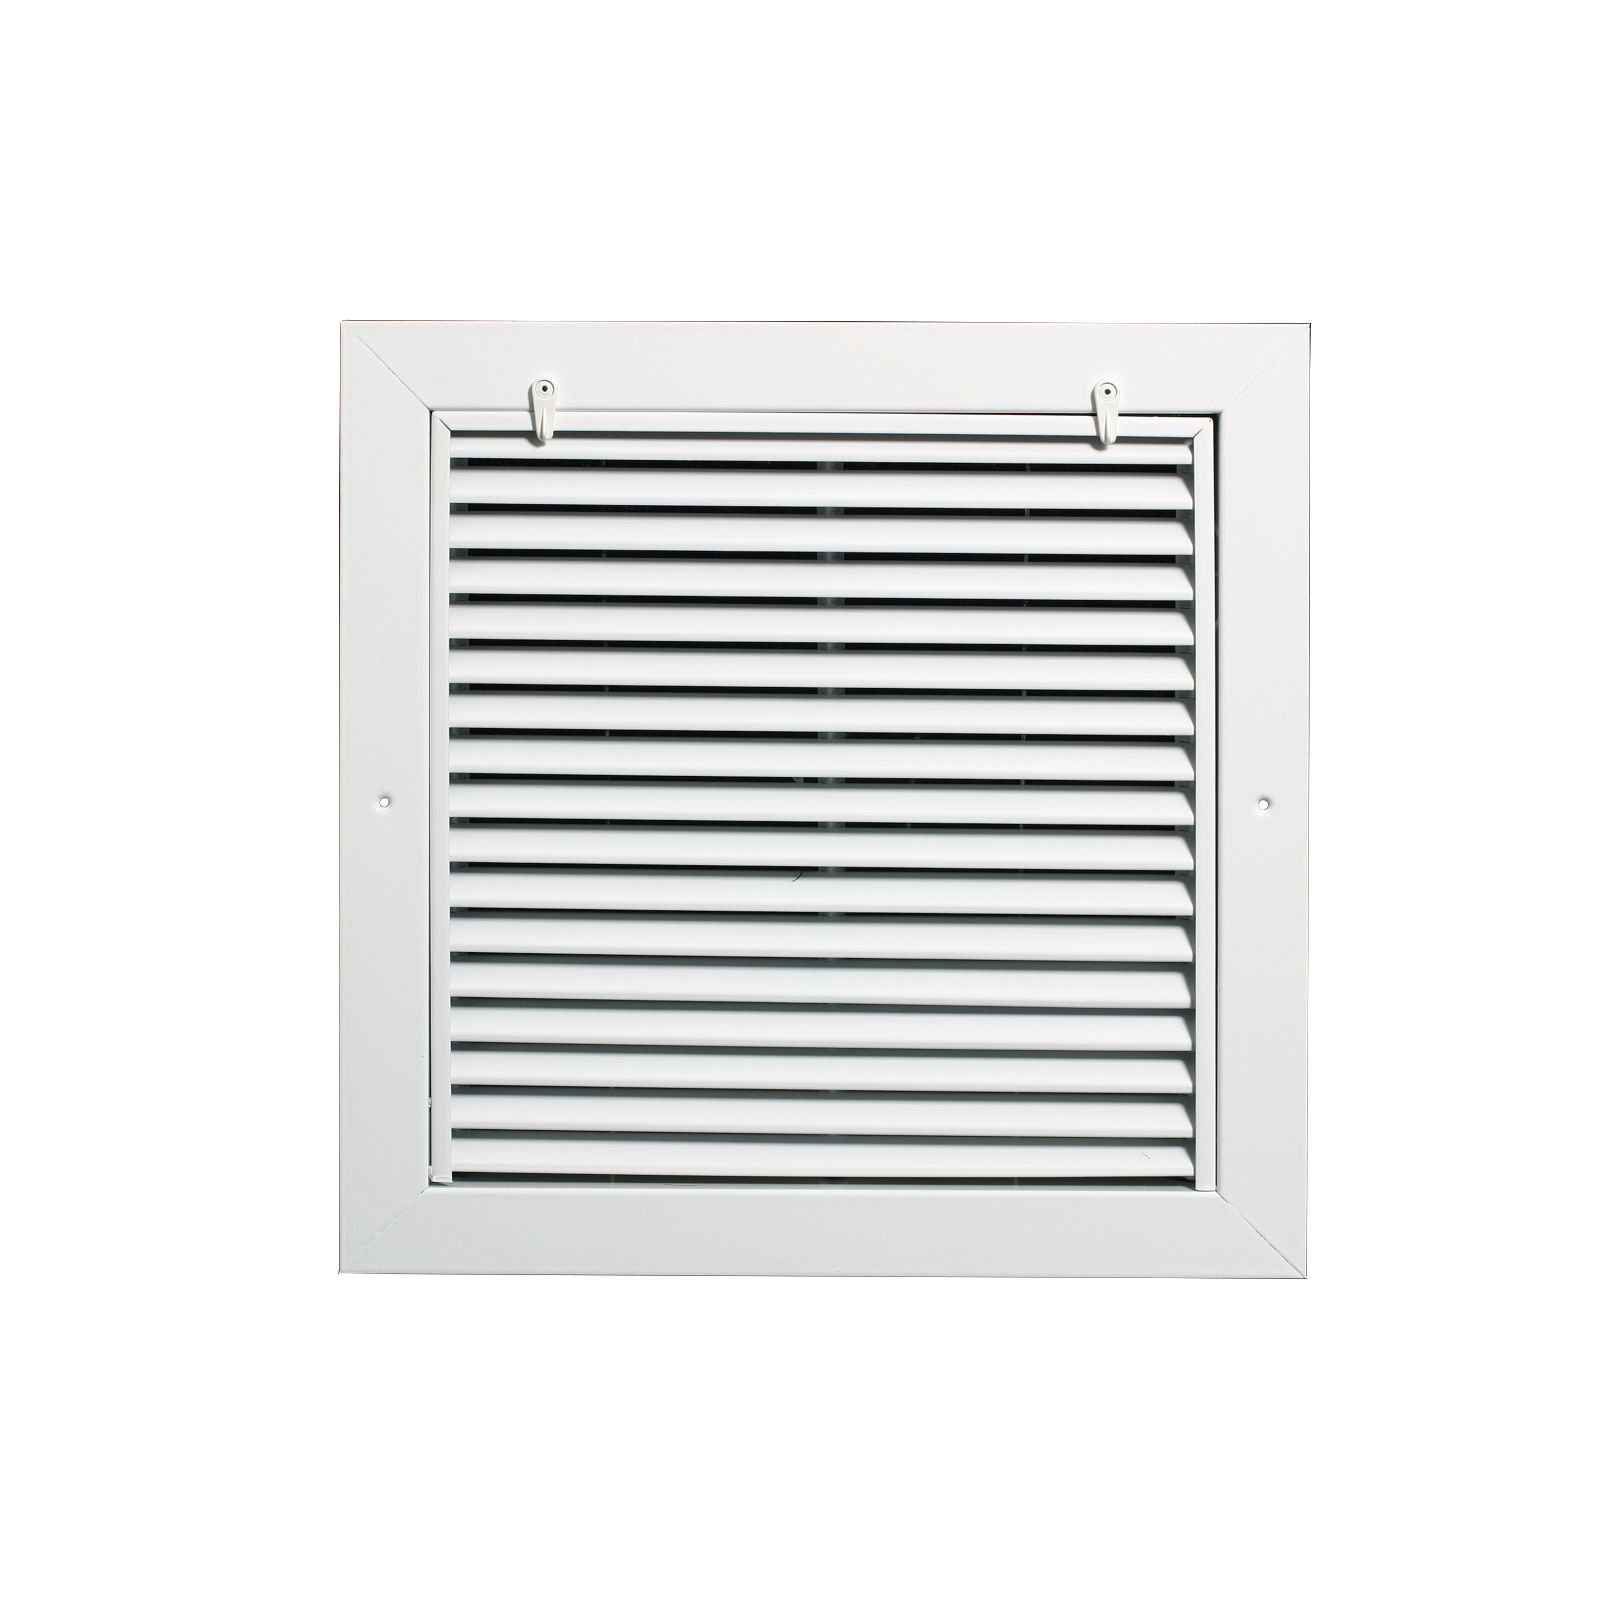 "Grille Tech RAFFS3624 - Aluminum Return Air Filter Grille, Filter Size 36"" X 24"" White"